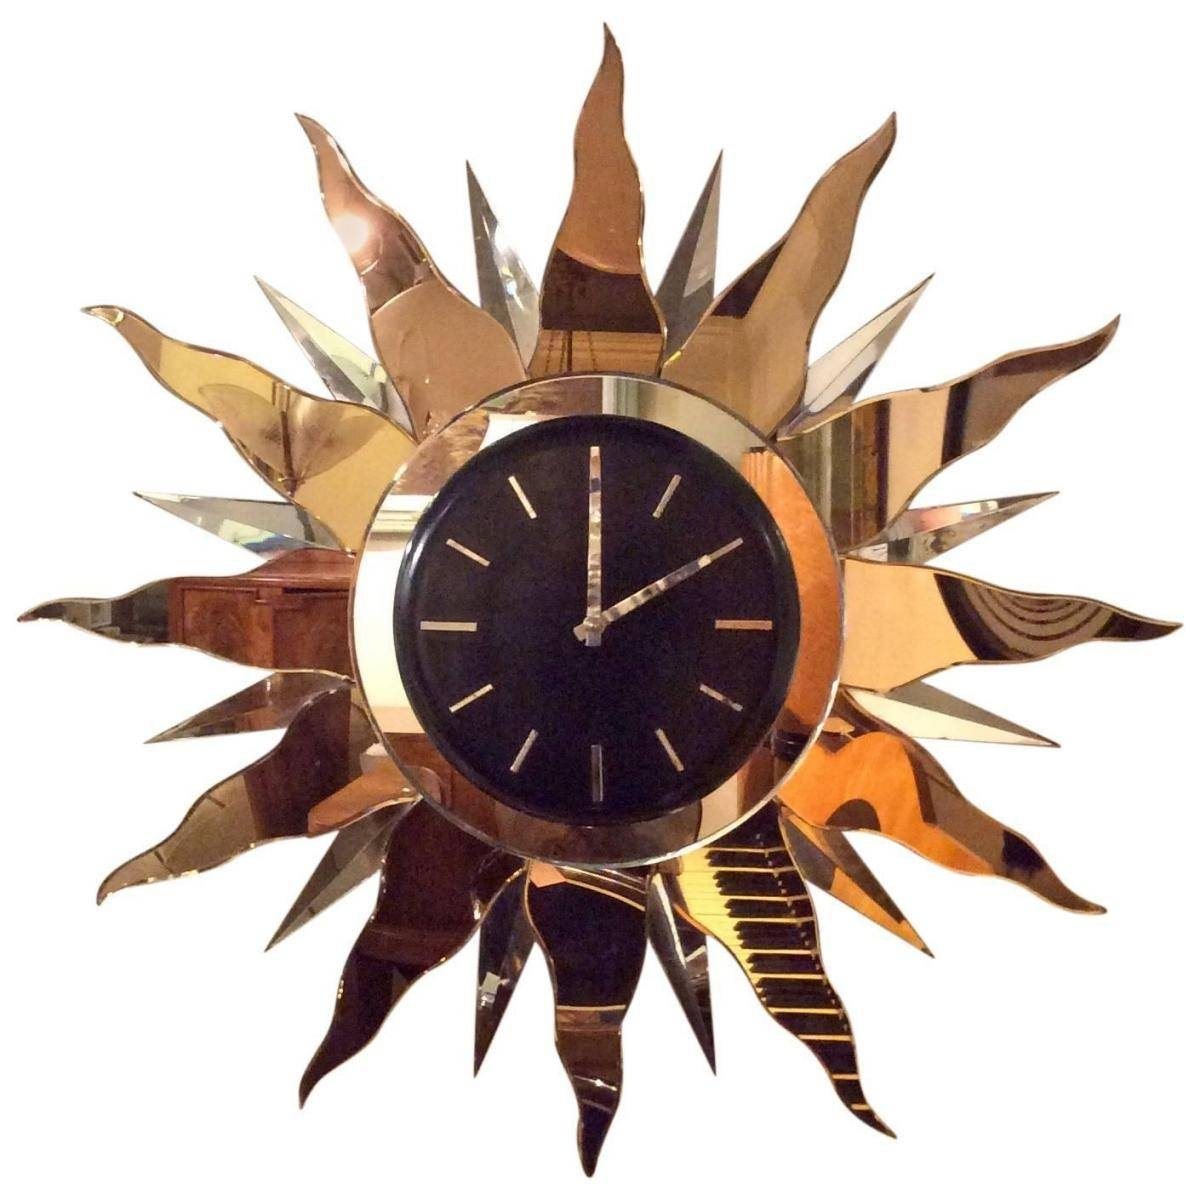 Large Art Deco Wall Clock, 1930S For Sale At Pamono Inside Most Recent Large Art Deco Wall Clocks (View 14 of 30)